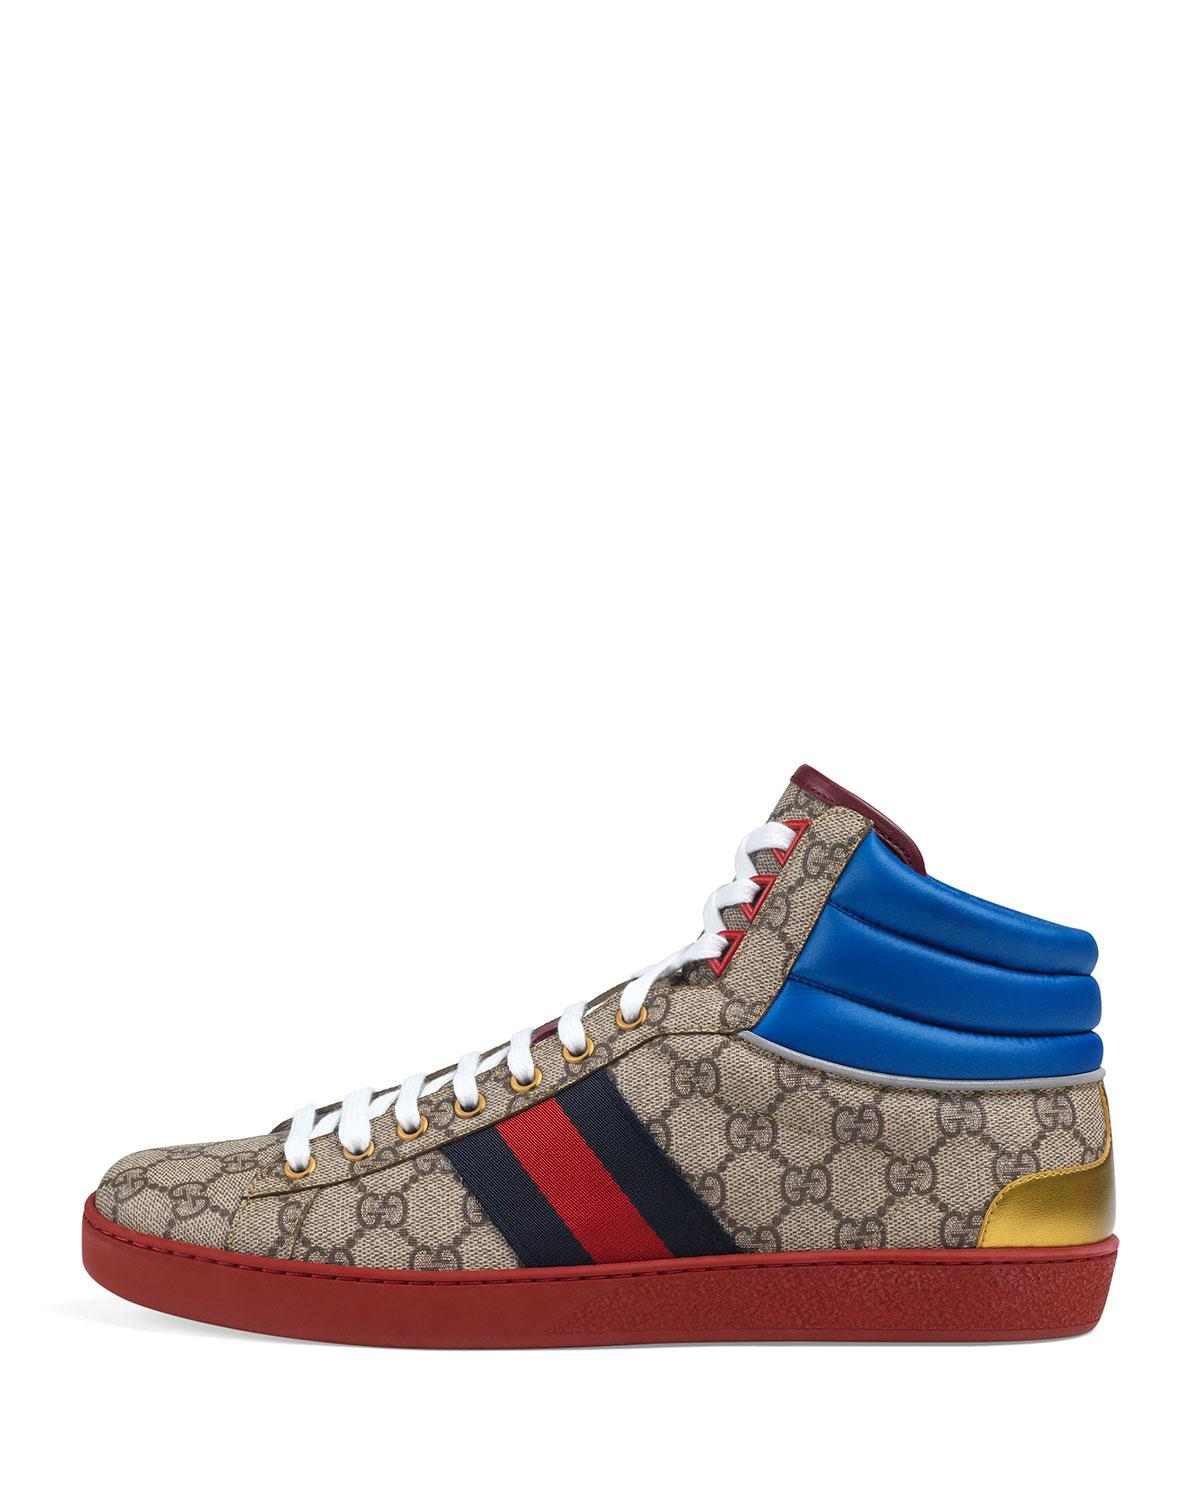 ebe3bb3539e Lyst - Gucci Ace GG High-top Sneakers in Brown for Men